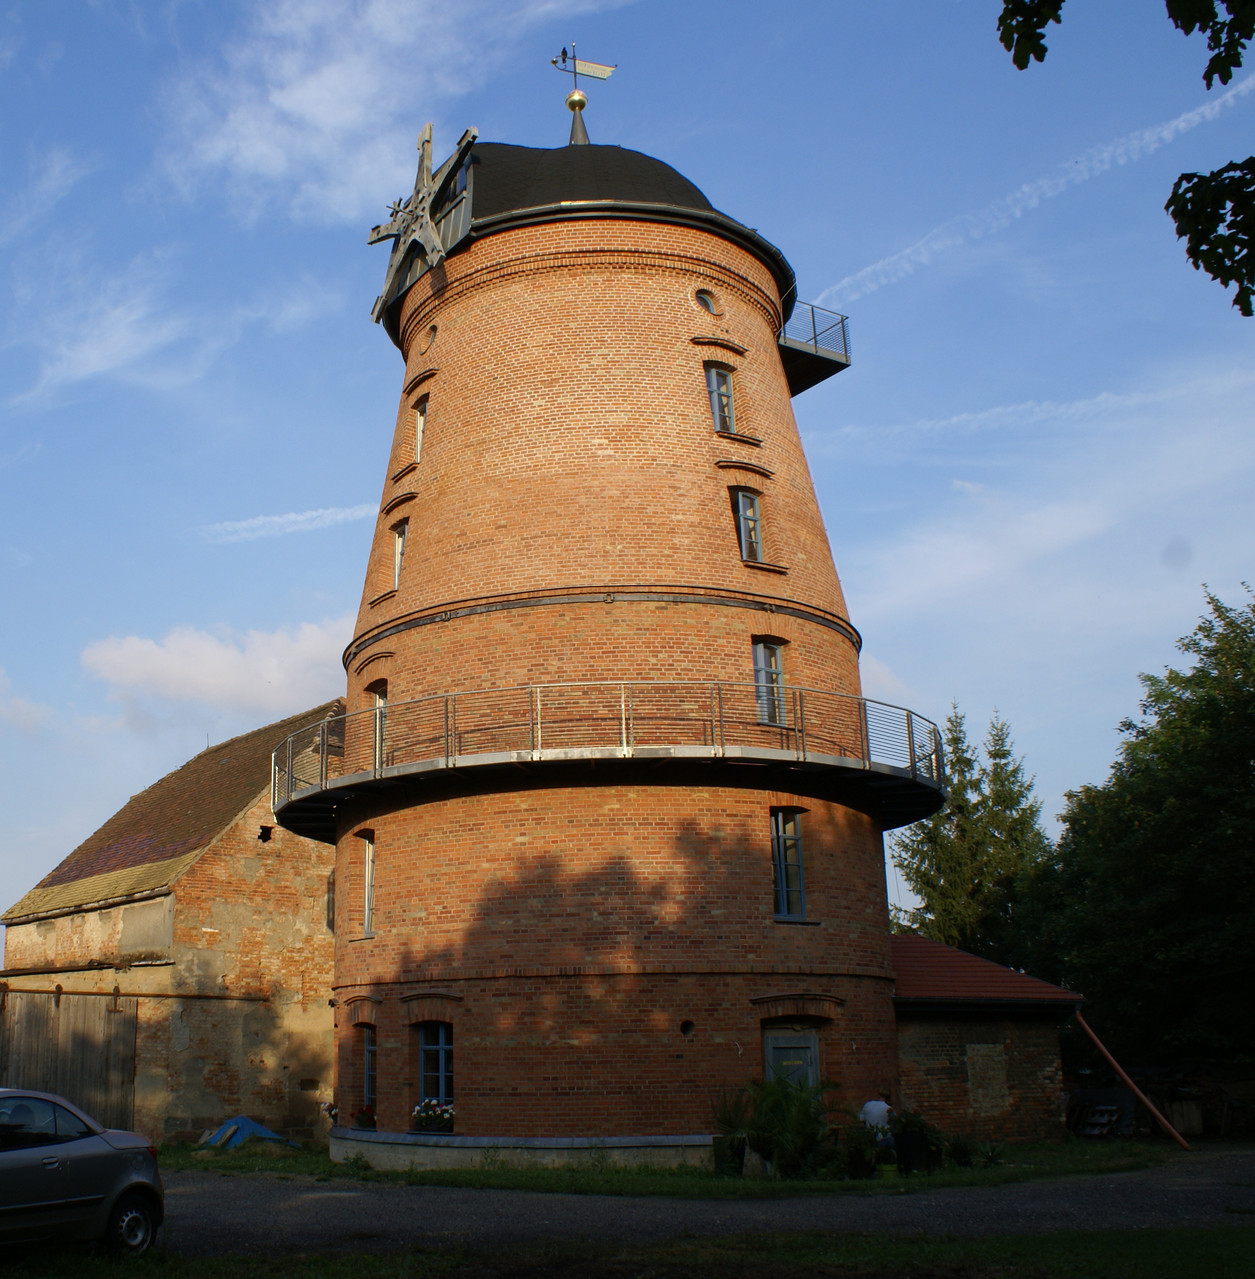 Holländer Mühle in Naumburg